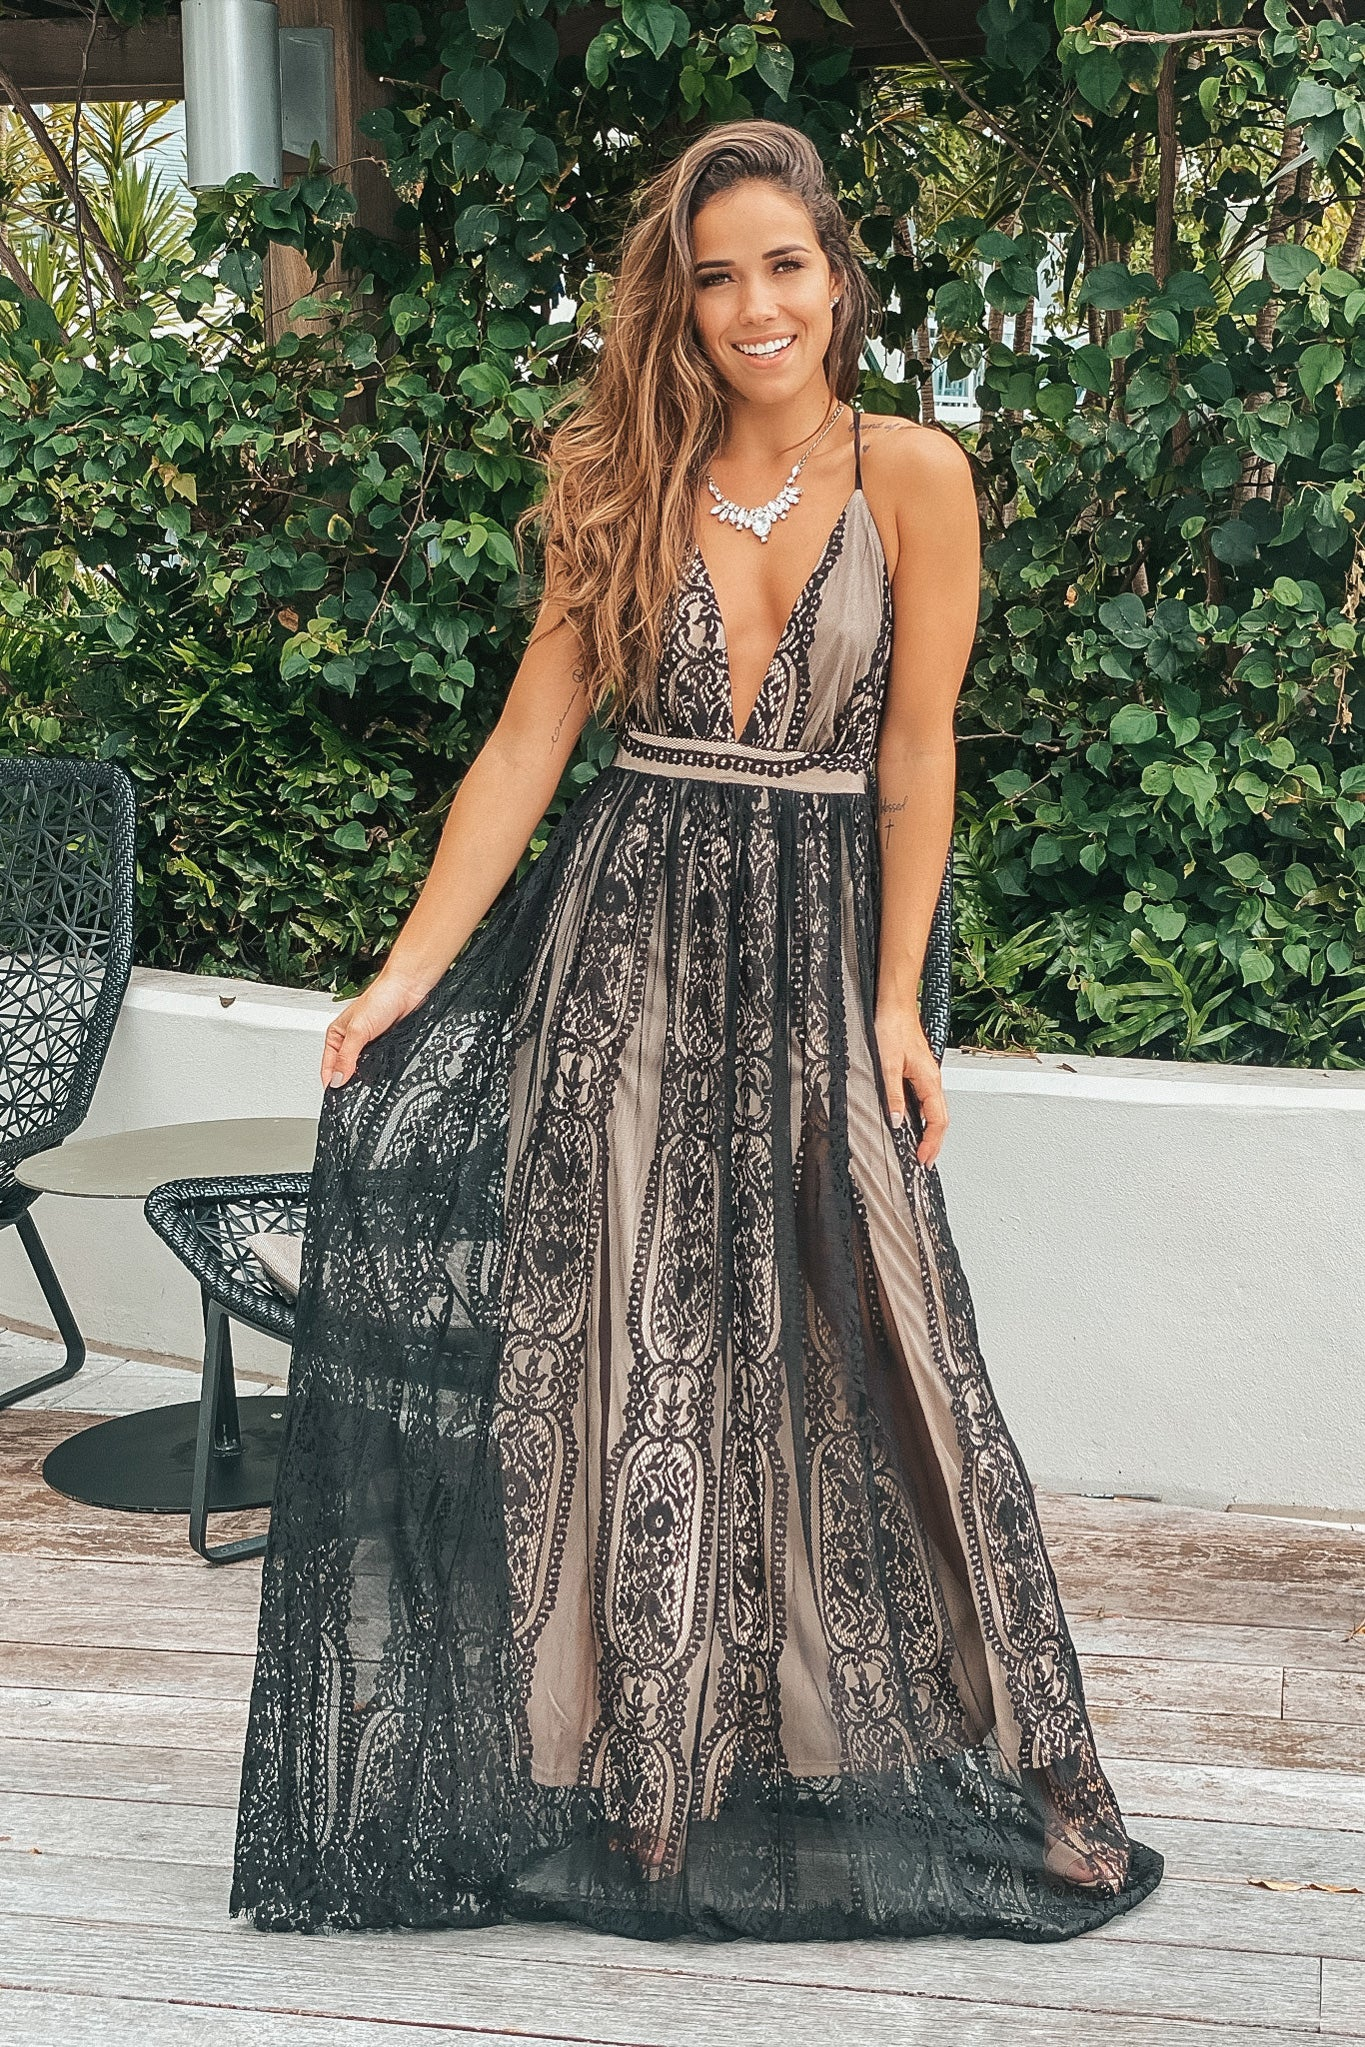 beige and black lace maxi dress